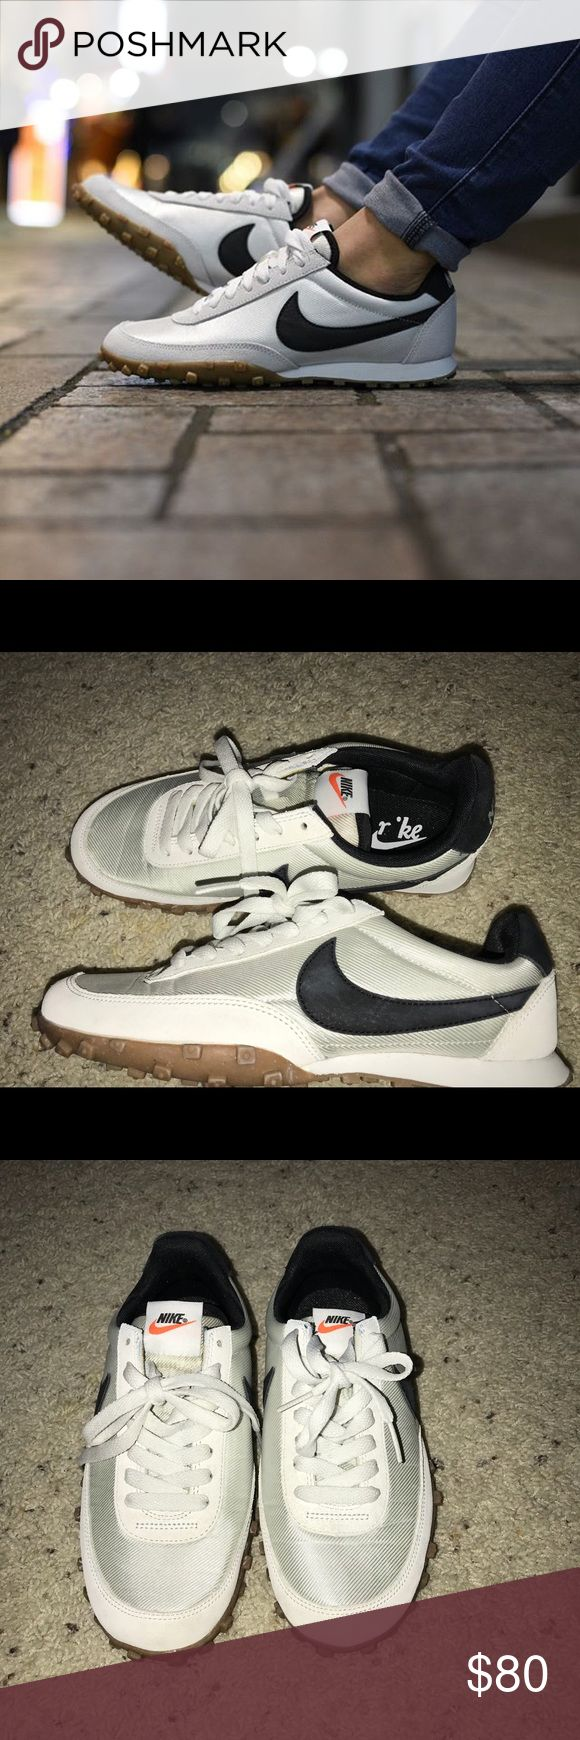 Nike waffle trainers RARE find Worn twice. Like new!! Size 7 Nike waffle trainers like the vintage 1974 waffle trainers!!! Rare find.   Off white/Black. The inside Nike on the insole rubbing off, but not visible when on. Nike Shoes Athletic Shoes